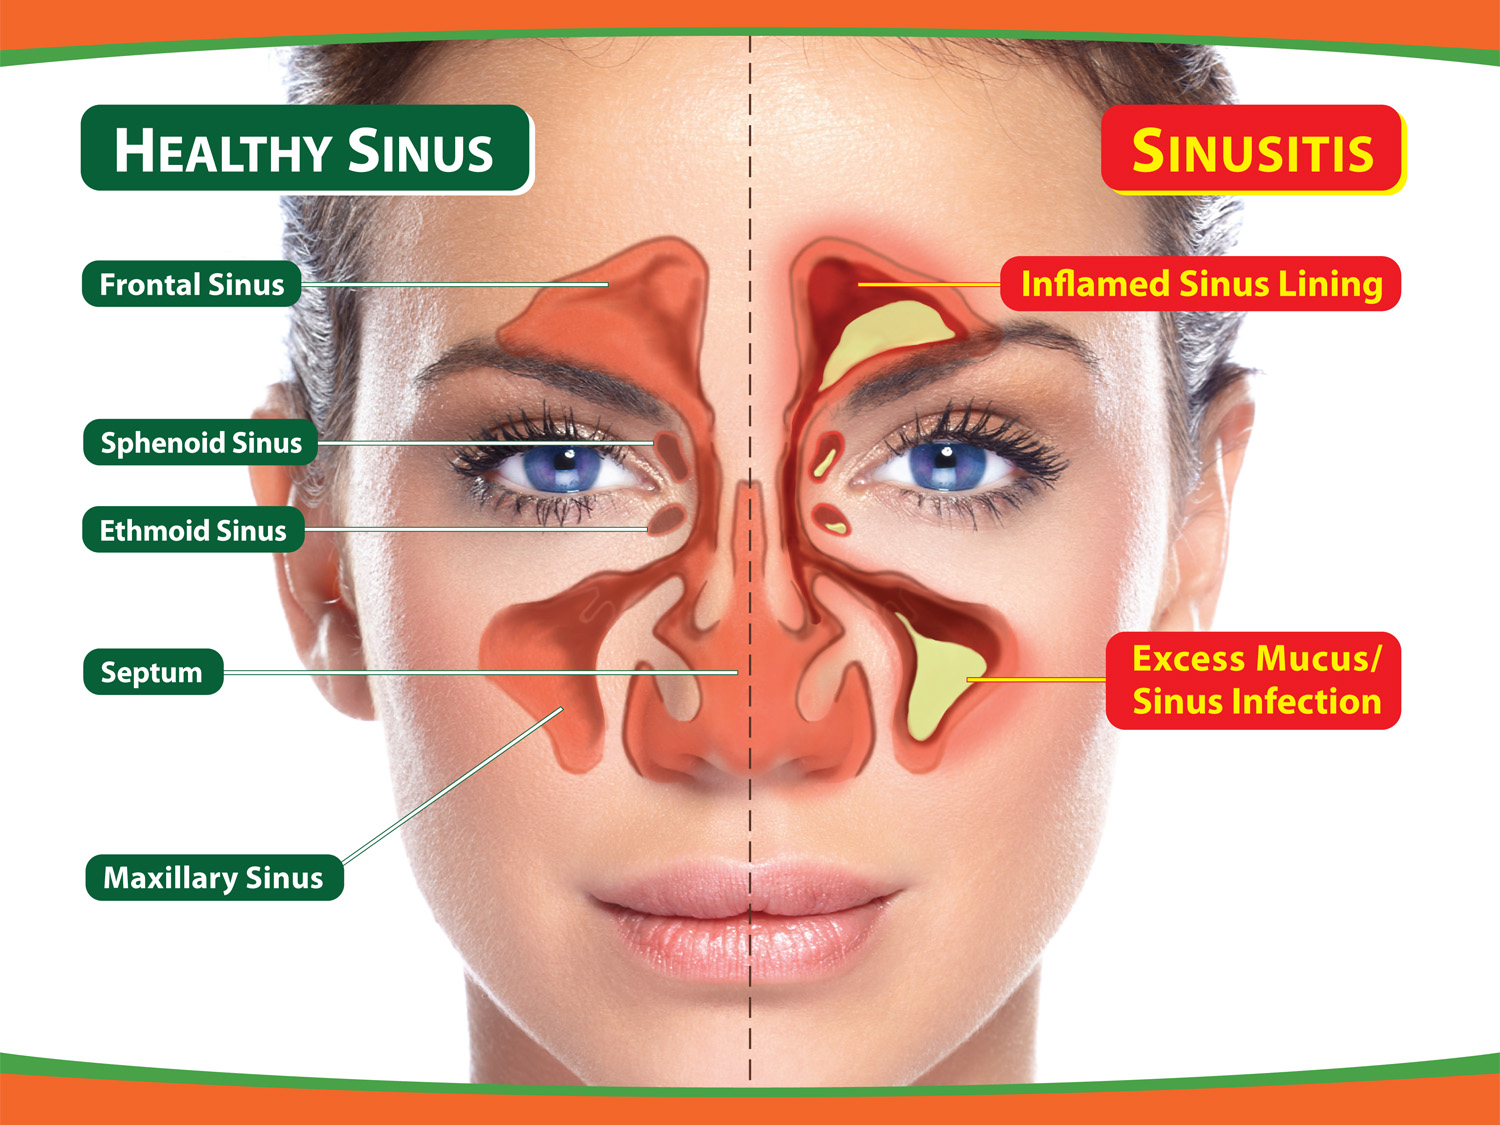 Dr Ananda Sinusitis